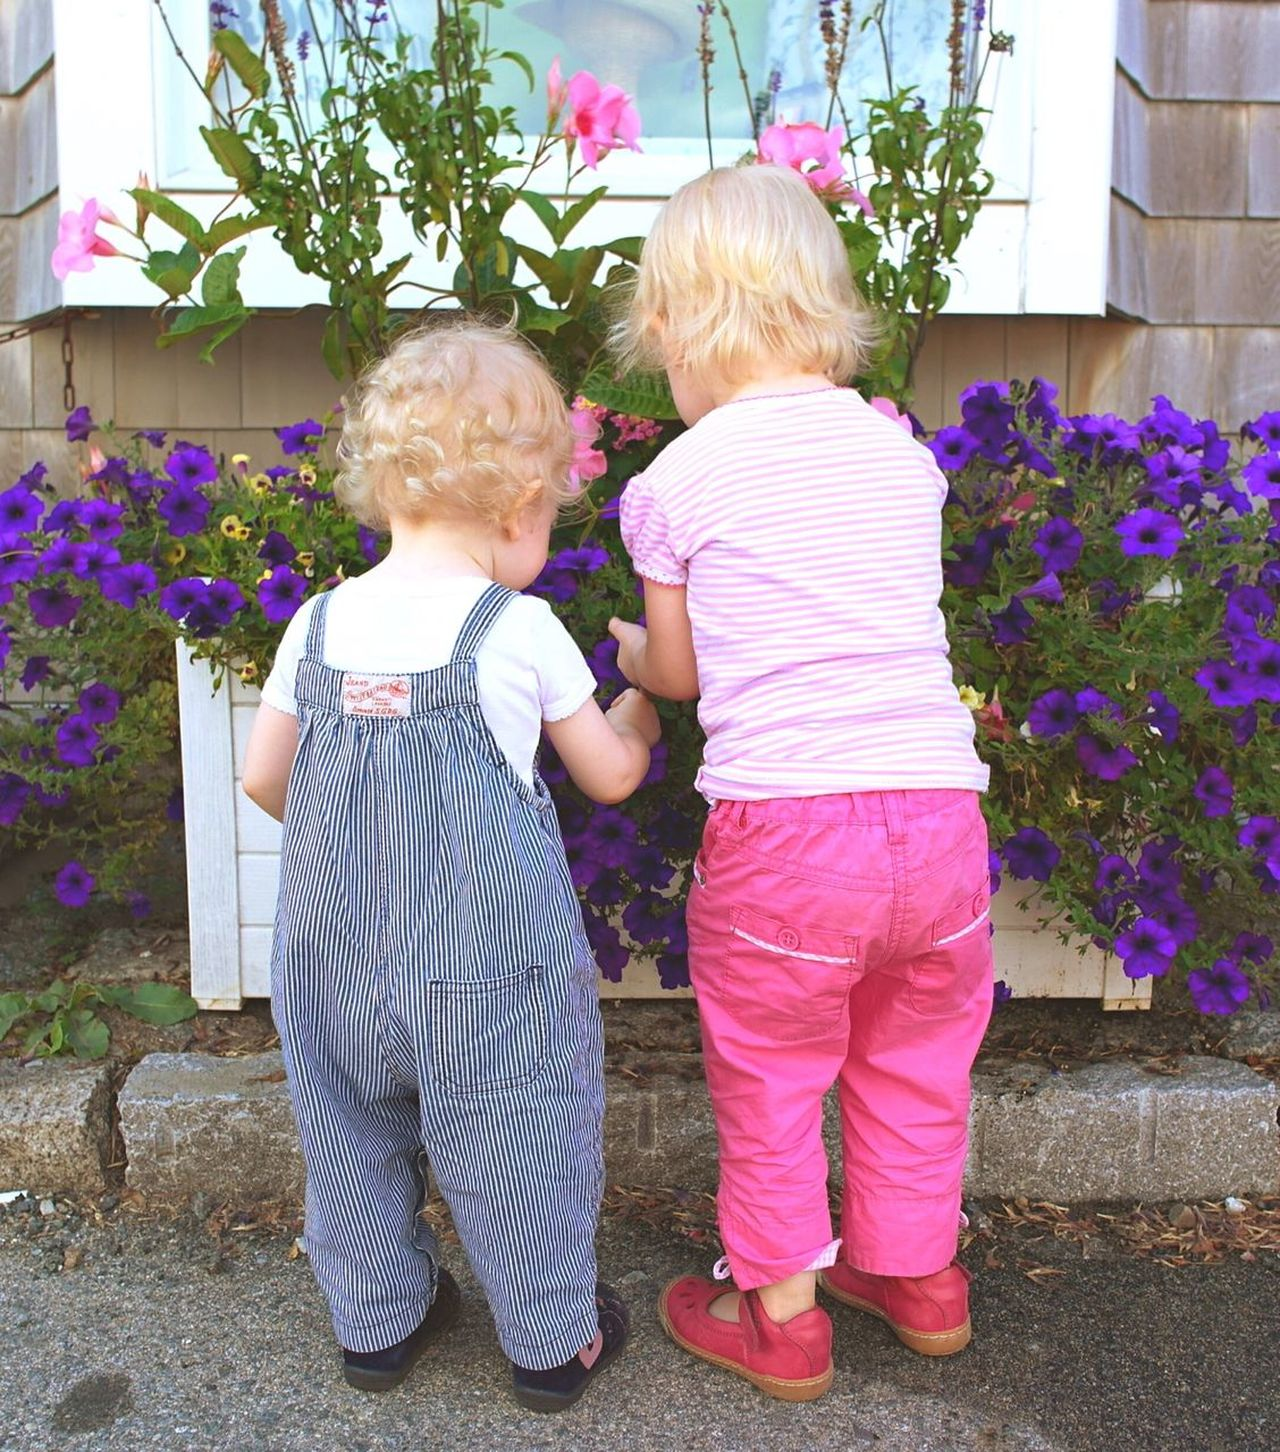 Pastel Power Girls Toddler  Toddlers  Toddlerlife Blonde Hair Blonde Flowers Flowers,Plants & Garden The Street Photographer - 2016 EyeEm Awards New England Charm New England Summer Life In New England